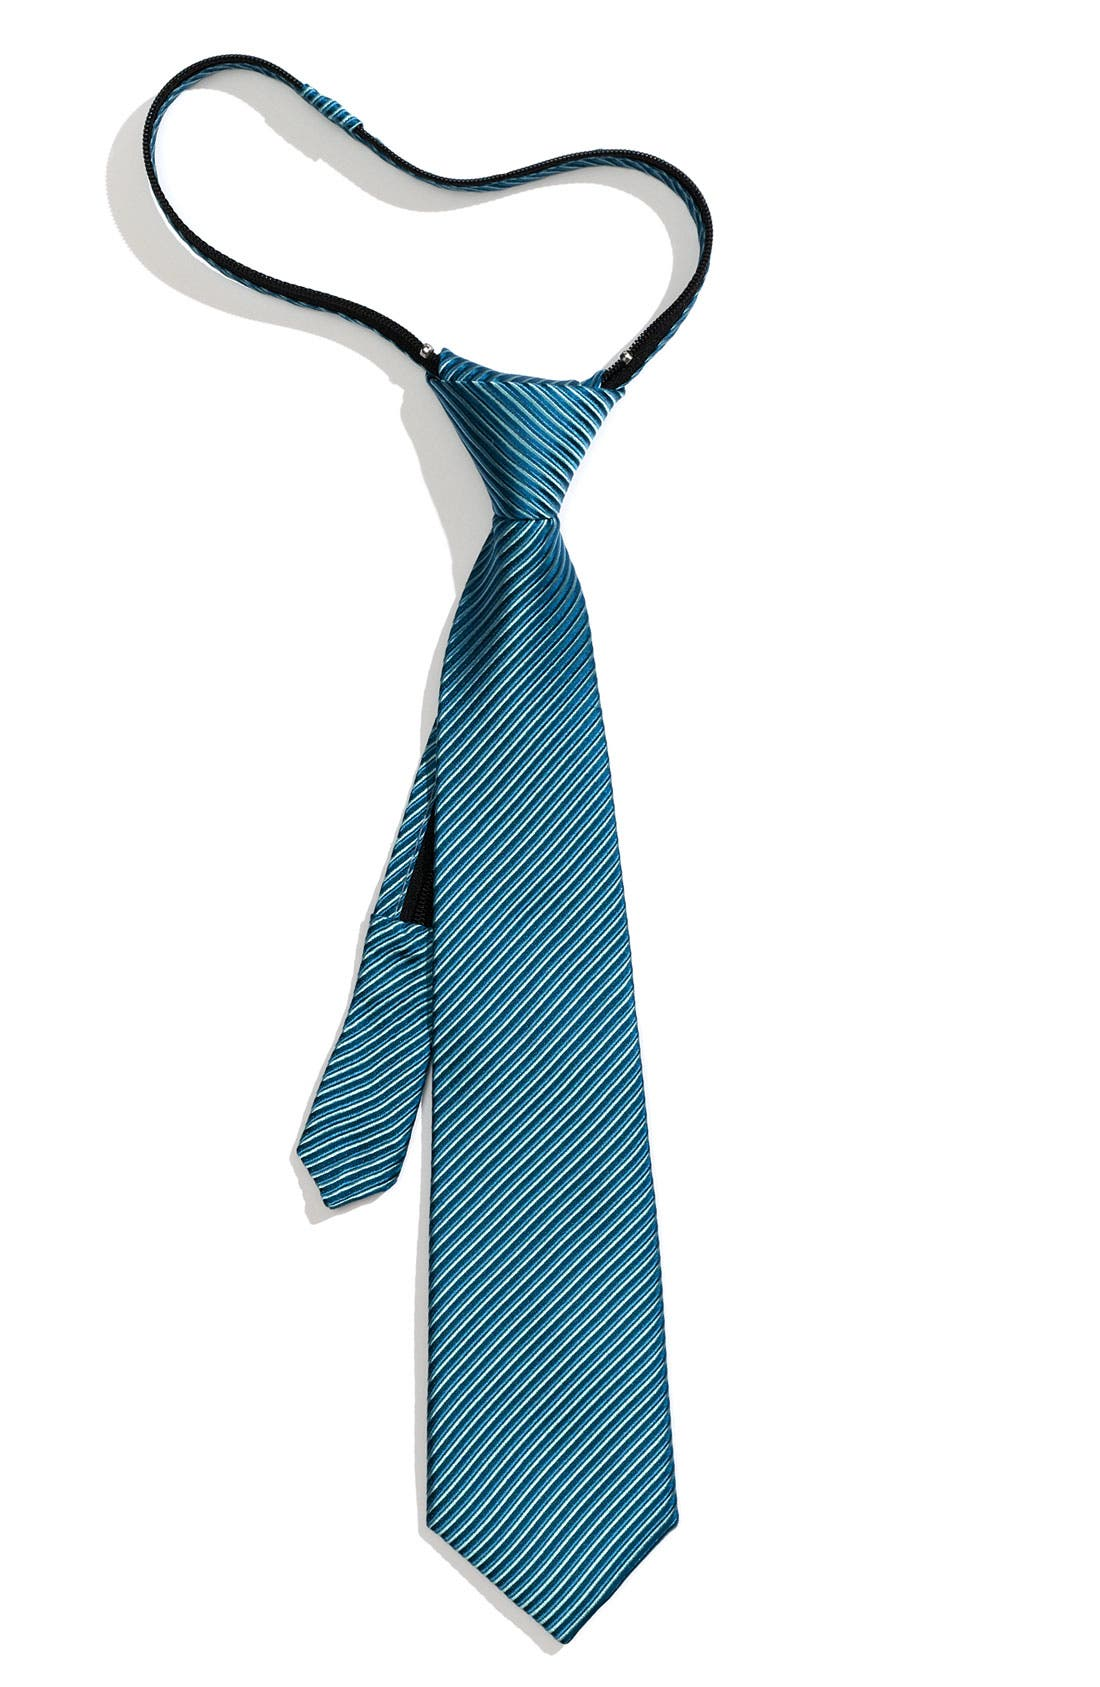 Alternate Image 1 Selected - Nordstrom Stripe Zipper Tie (Little Boys)